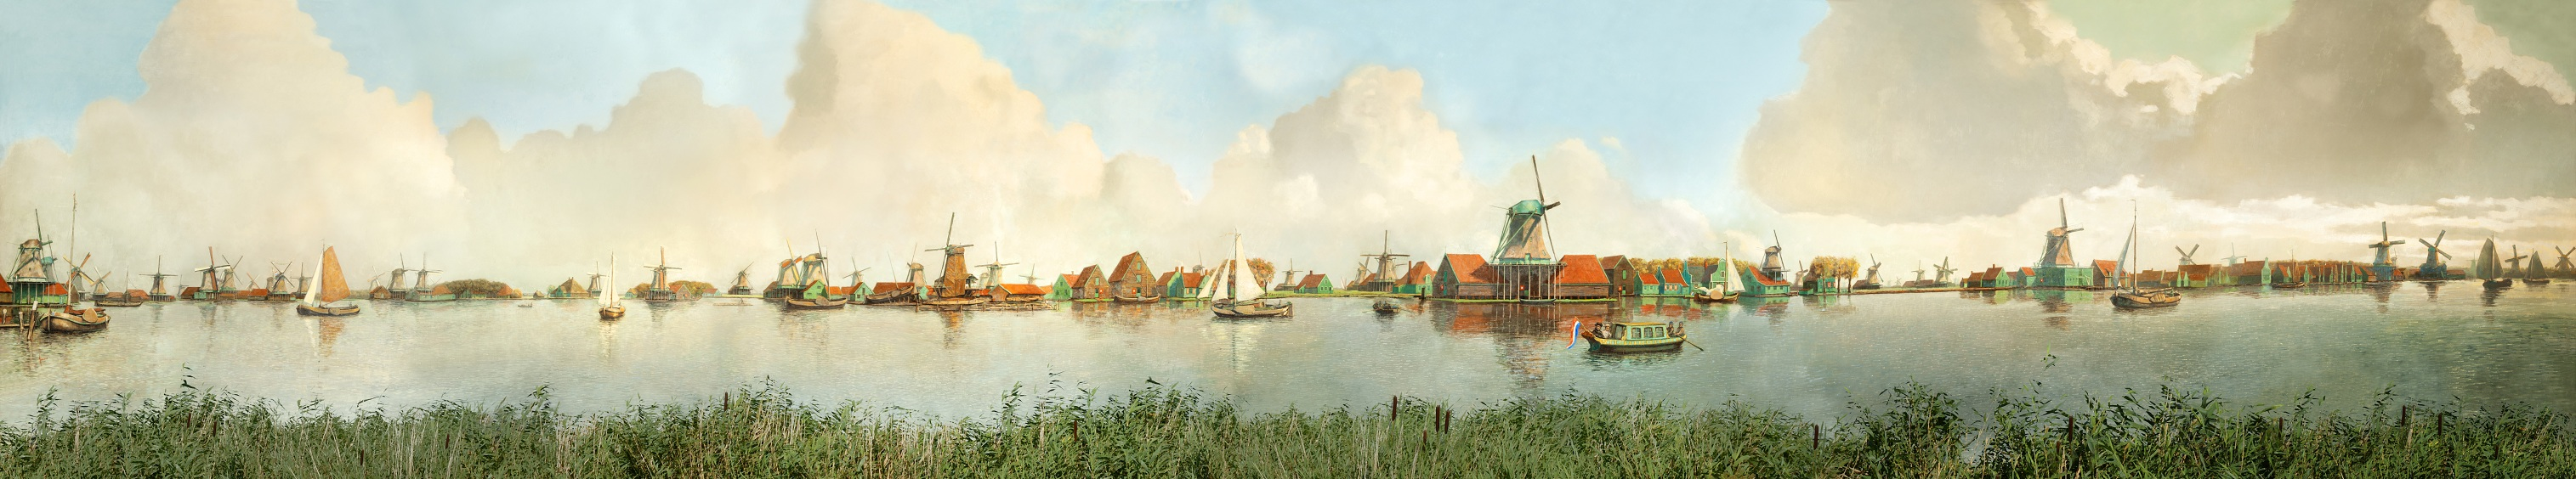 founder-of-the-society-of-zaan-mills-frans-mars-painted-this-mill-panorama-in-the-nineteen-fourties